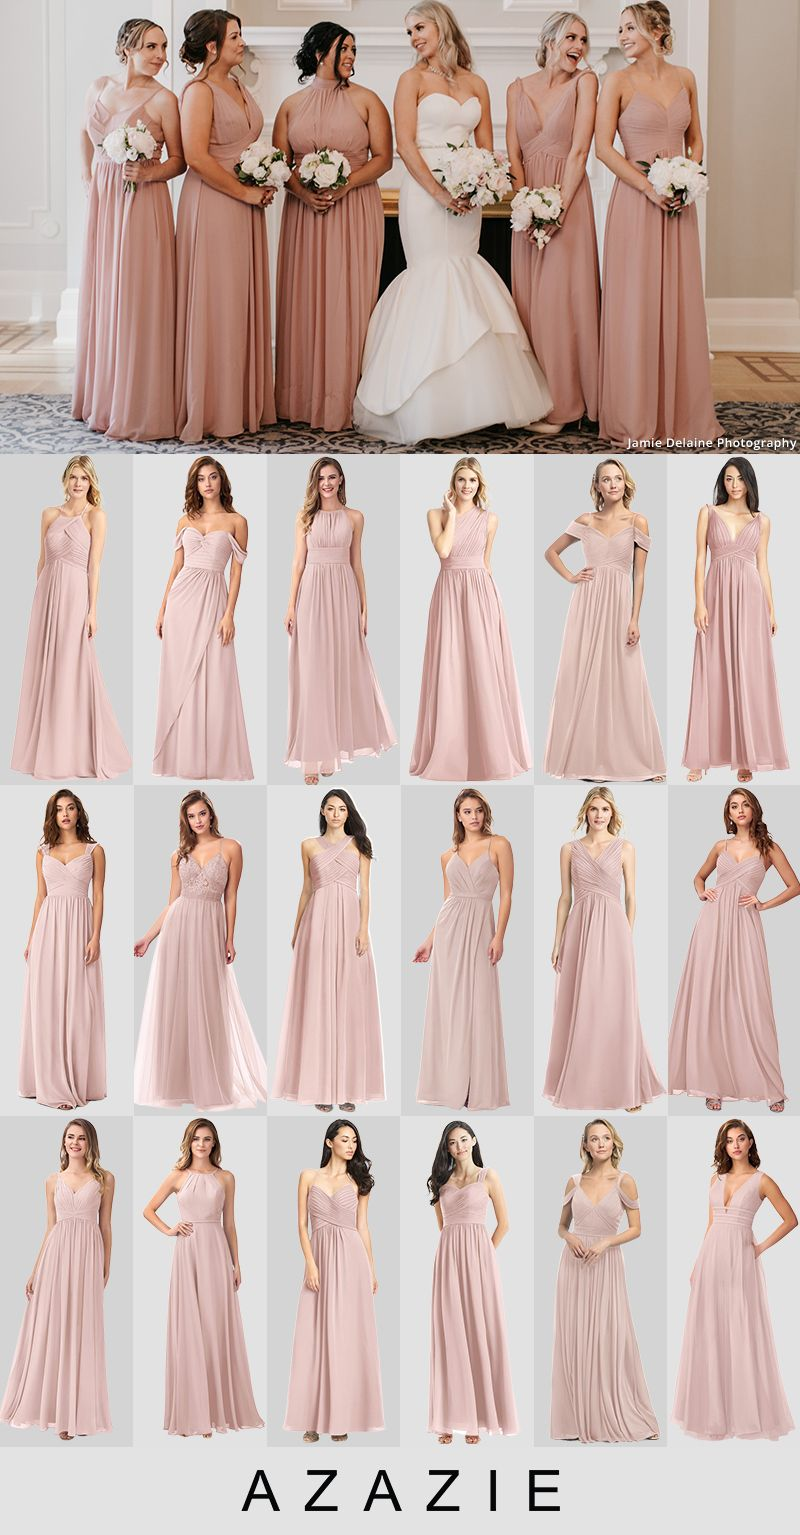 Dusty Rose Bridesmaid Dresses At Affordable Prices In 2020 Dusty Rose Bridesmaid Dresses Long Dusty Rose Bridesmaid Dresses Rose Bridesmaid Dresses